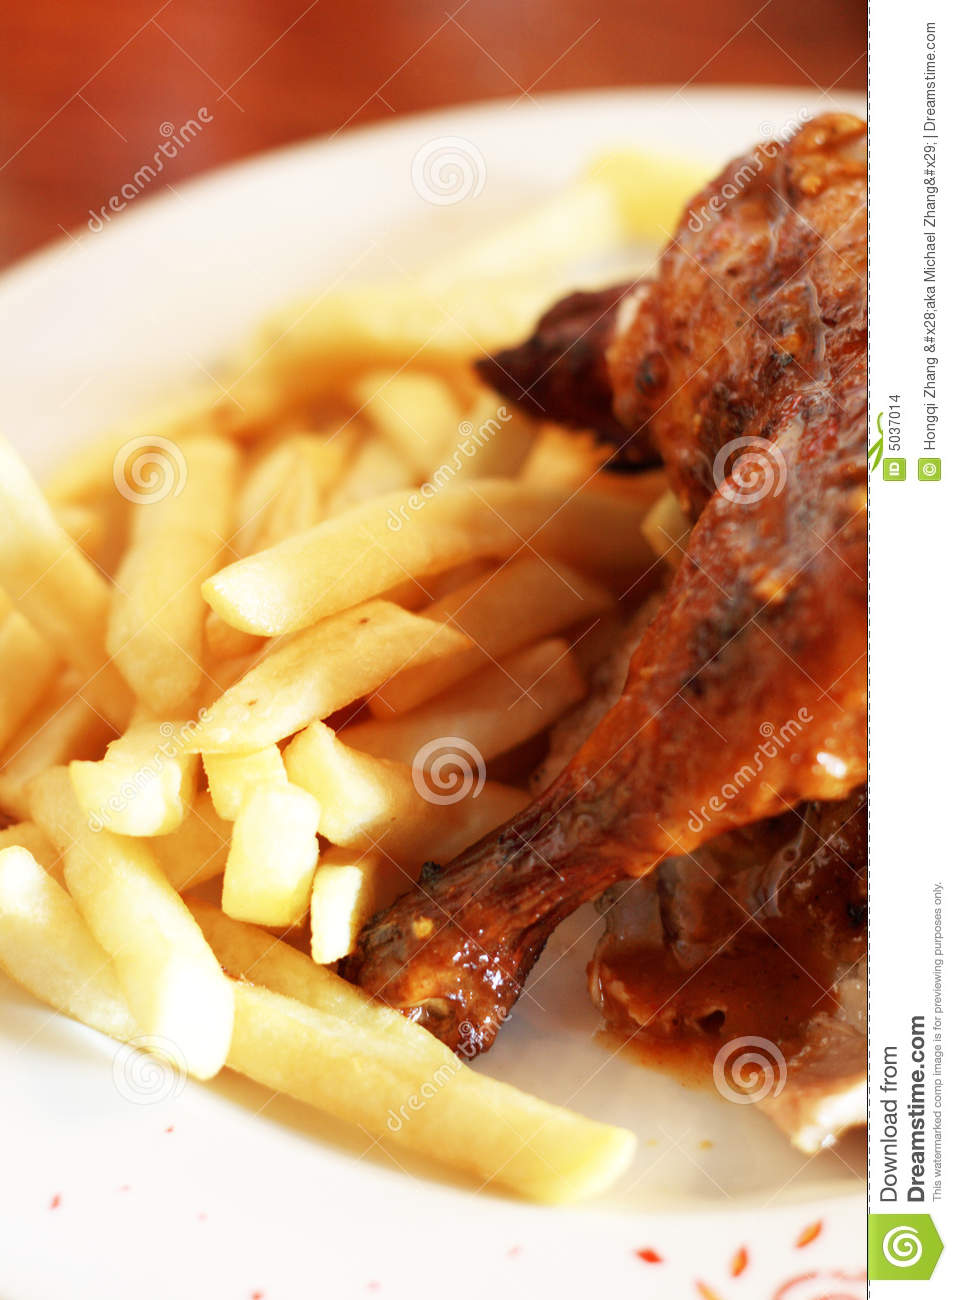 Grilled Chicken And Chips Stock Images Image 5037014